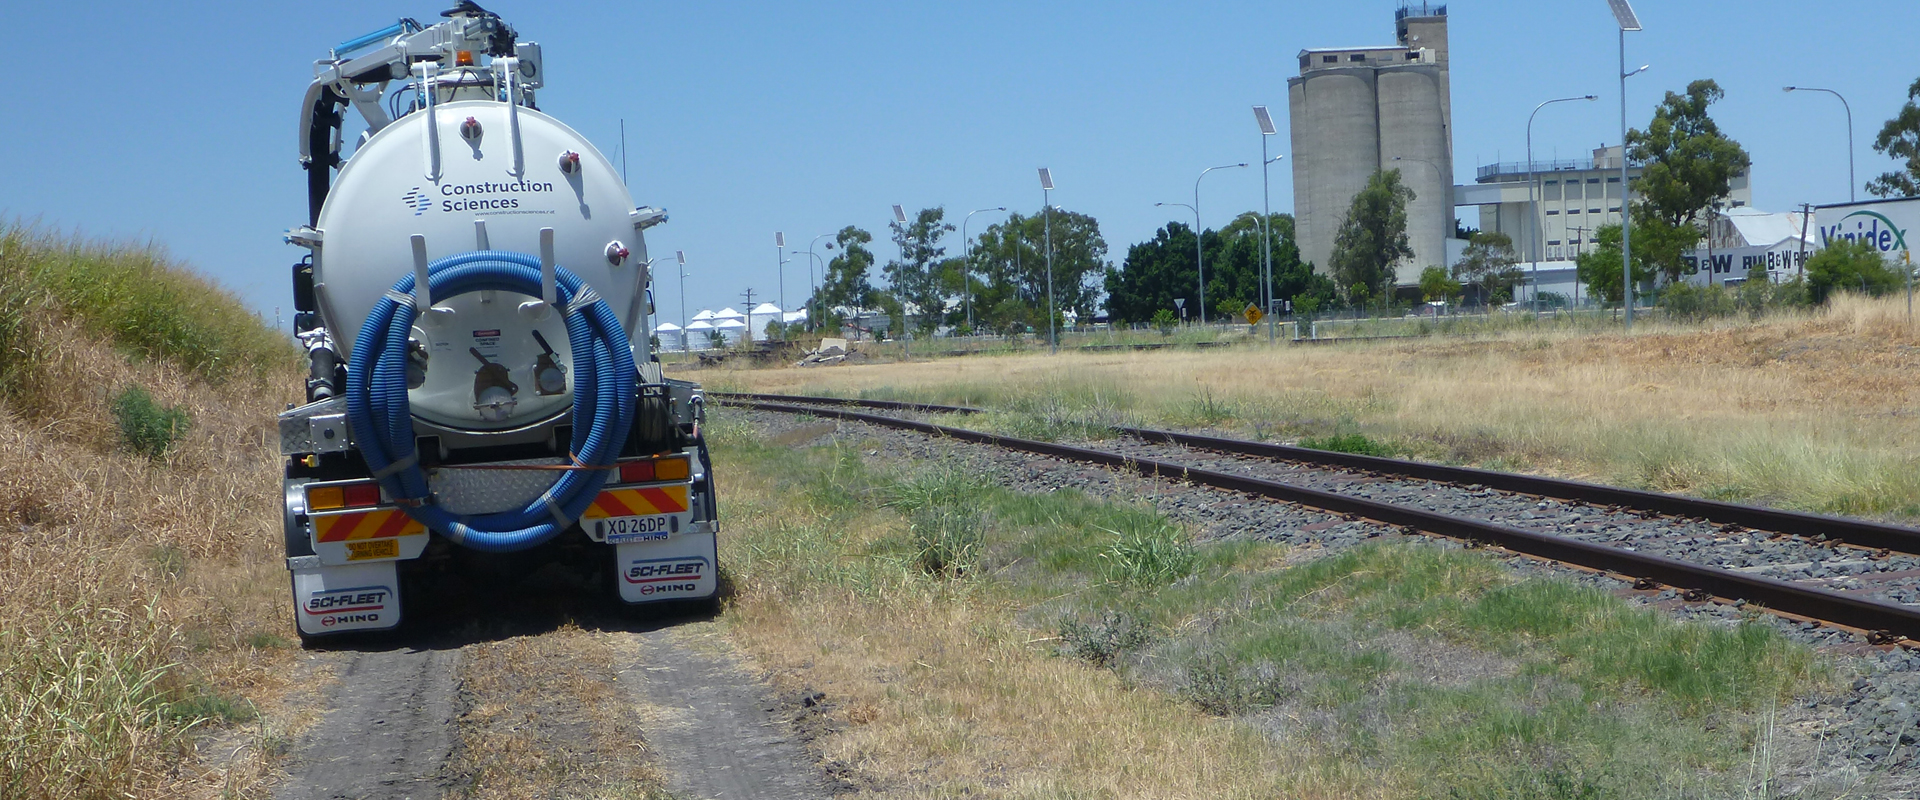 a construction sciences inland rail project